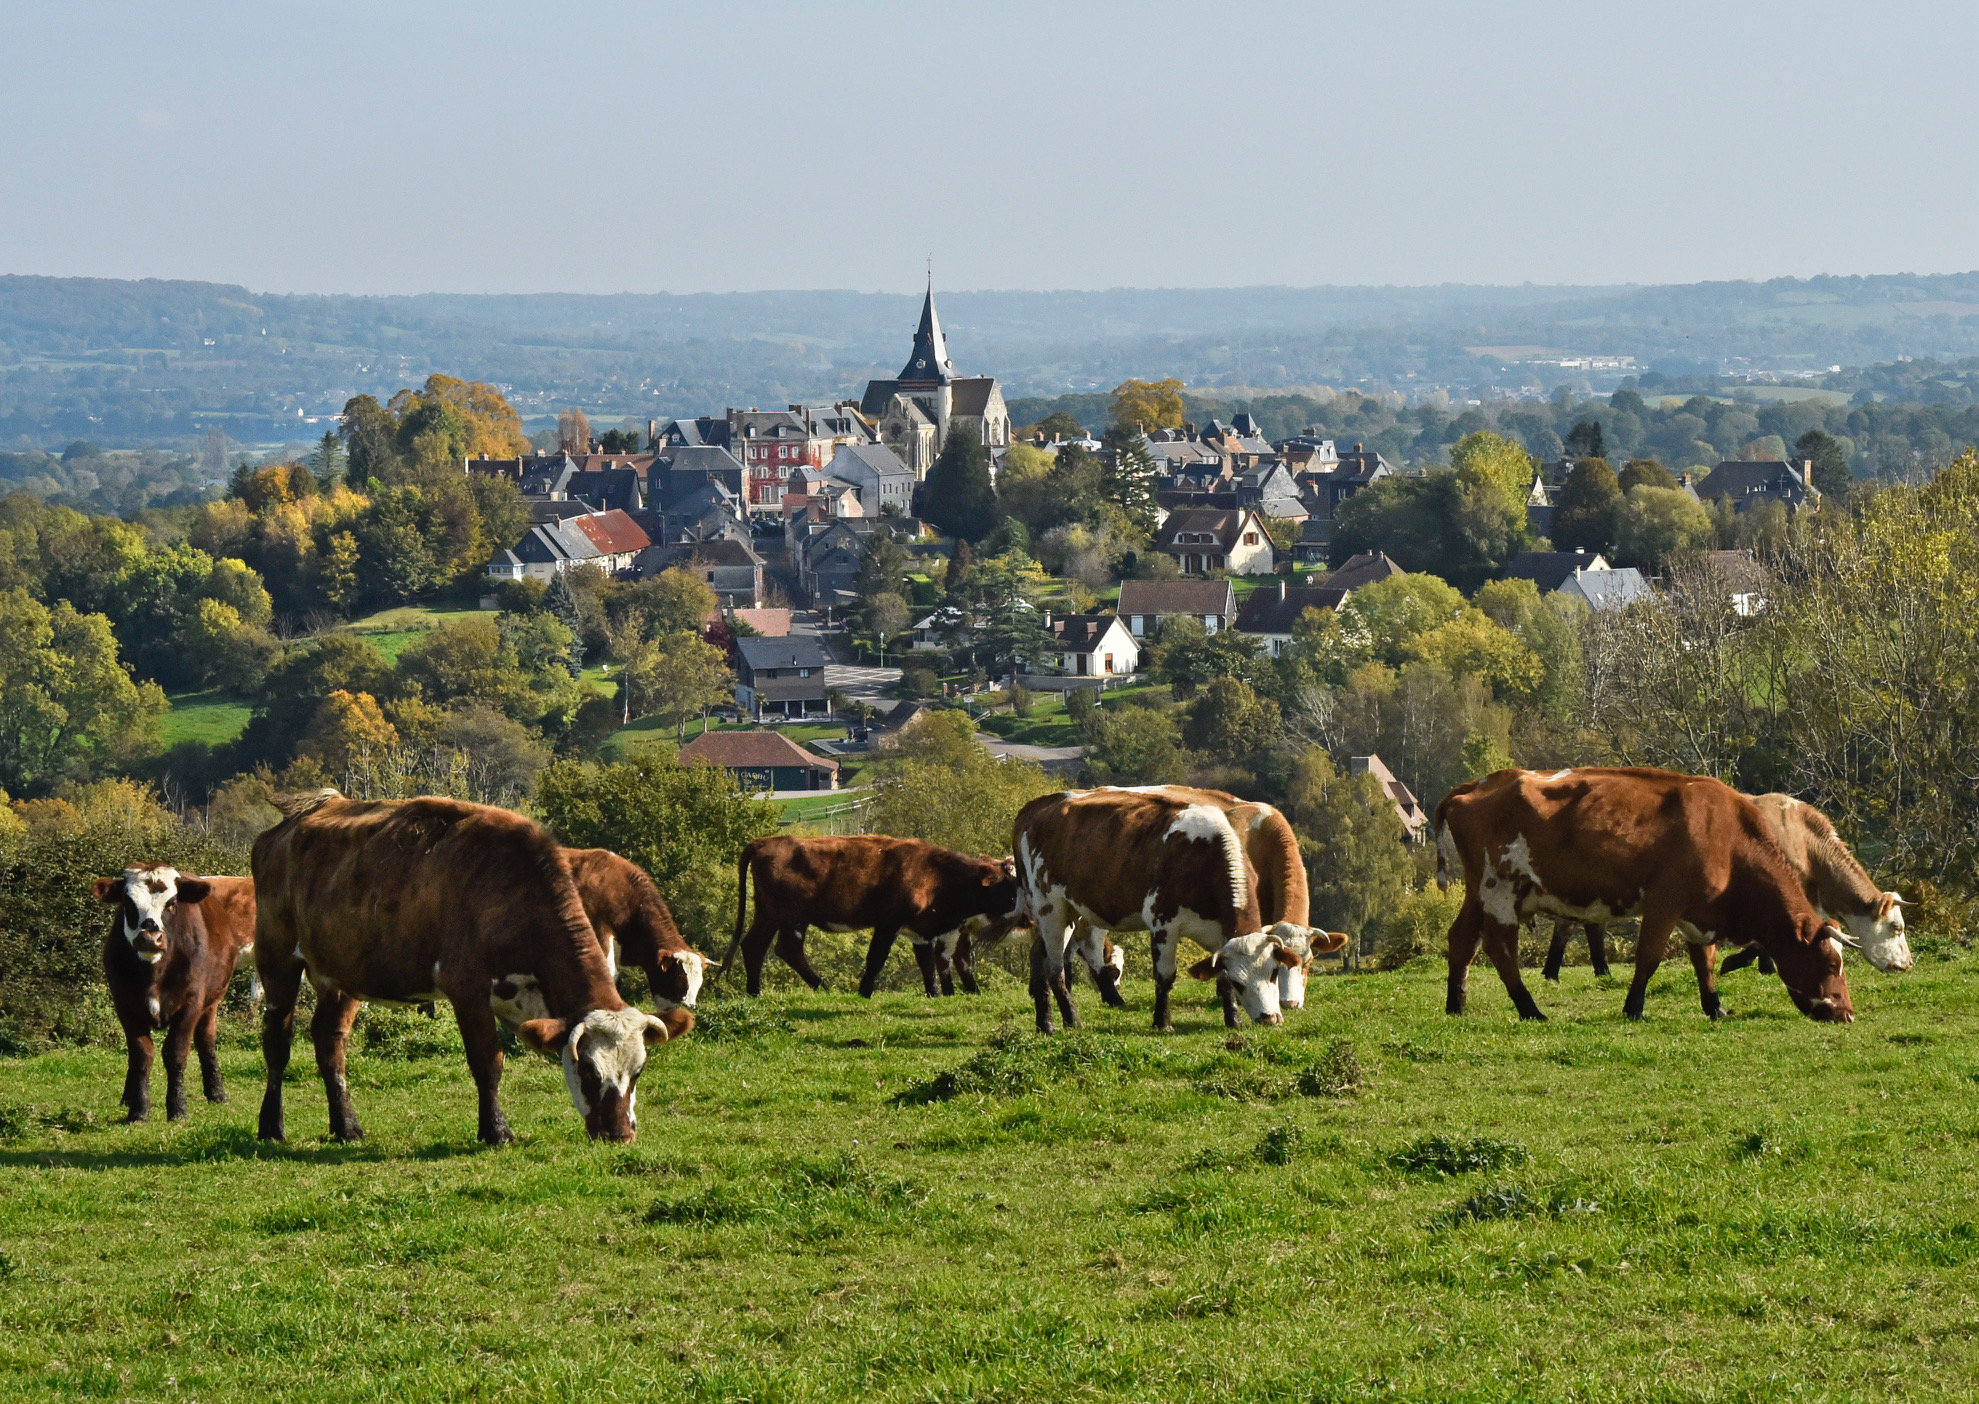 Le village de Beaumont et ses vaches normandes